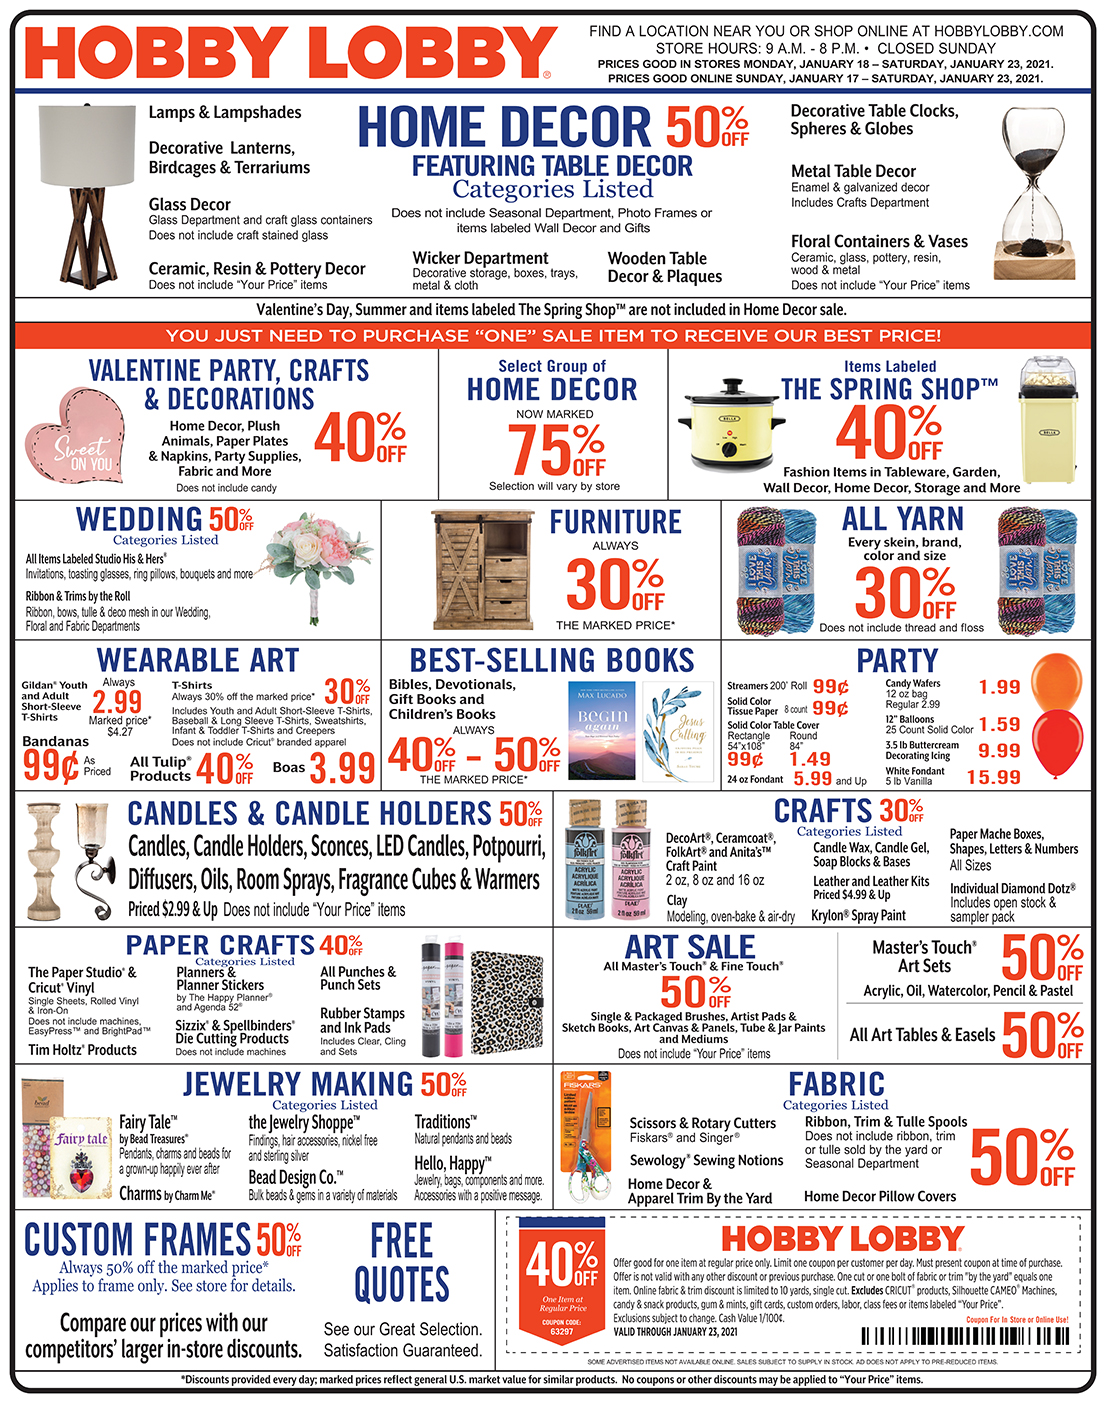 Hobby Lobby Weekly Ad - Prices Good Through January 23rd 2021